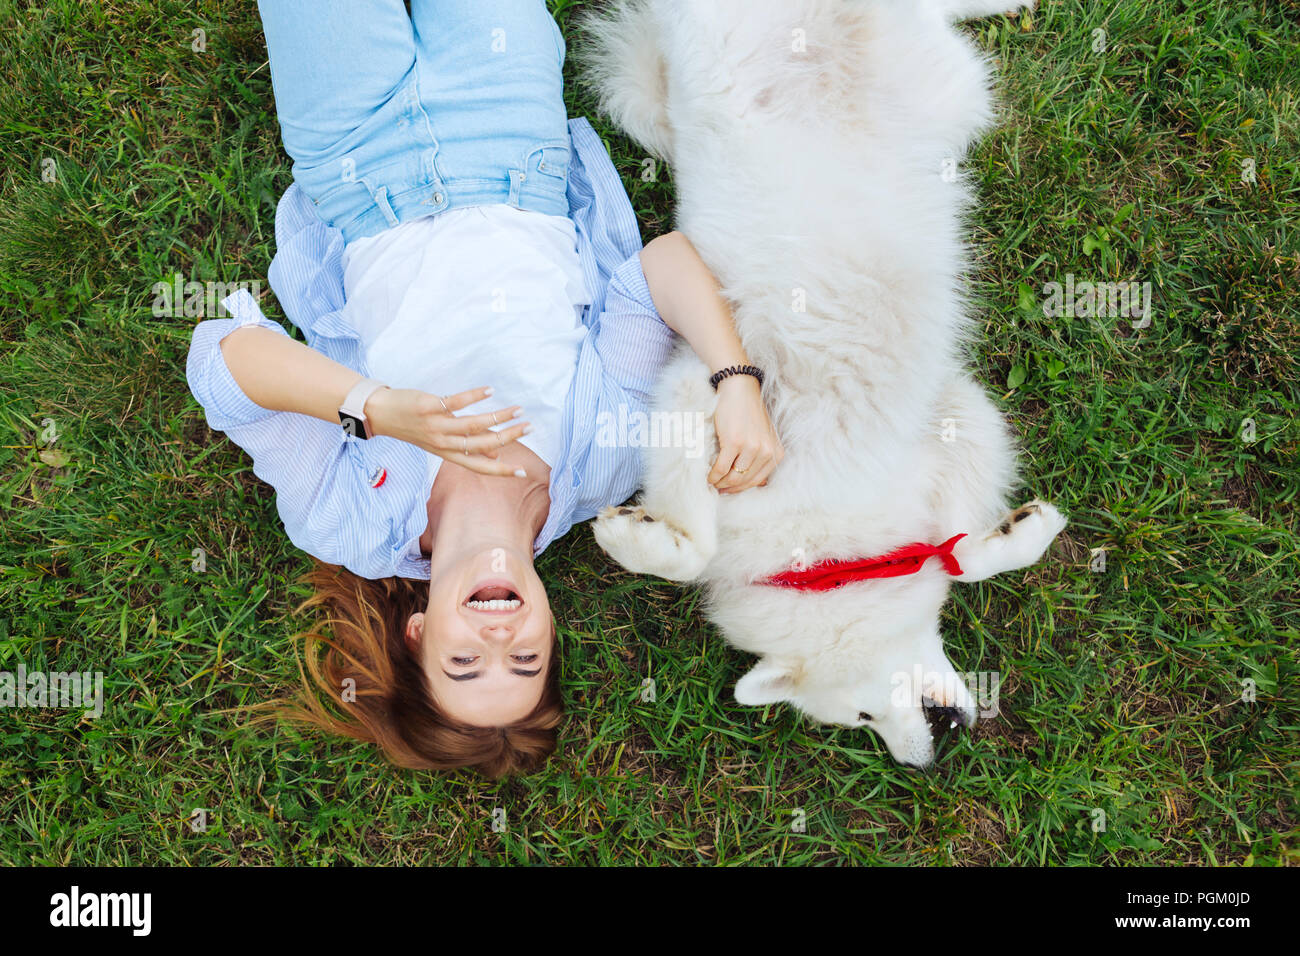 Funny woman laughing while playing with her white dog - Stock Image